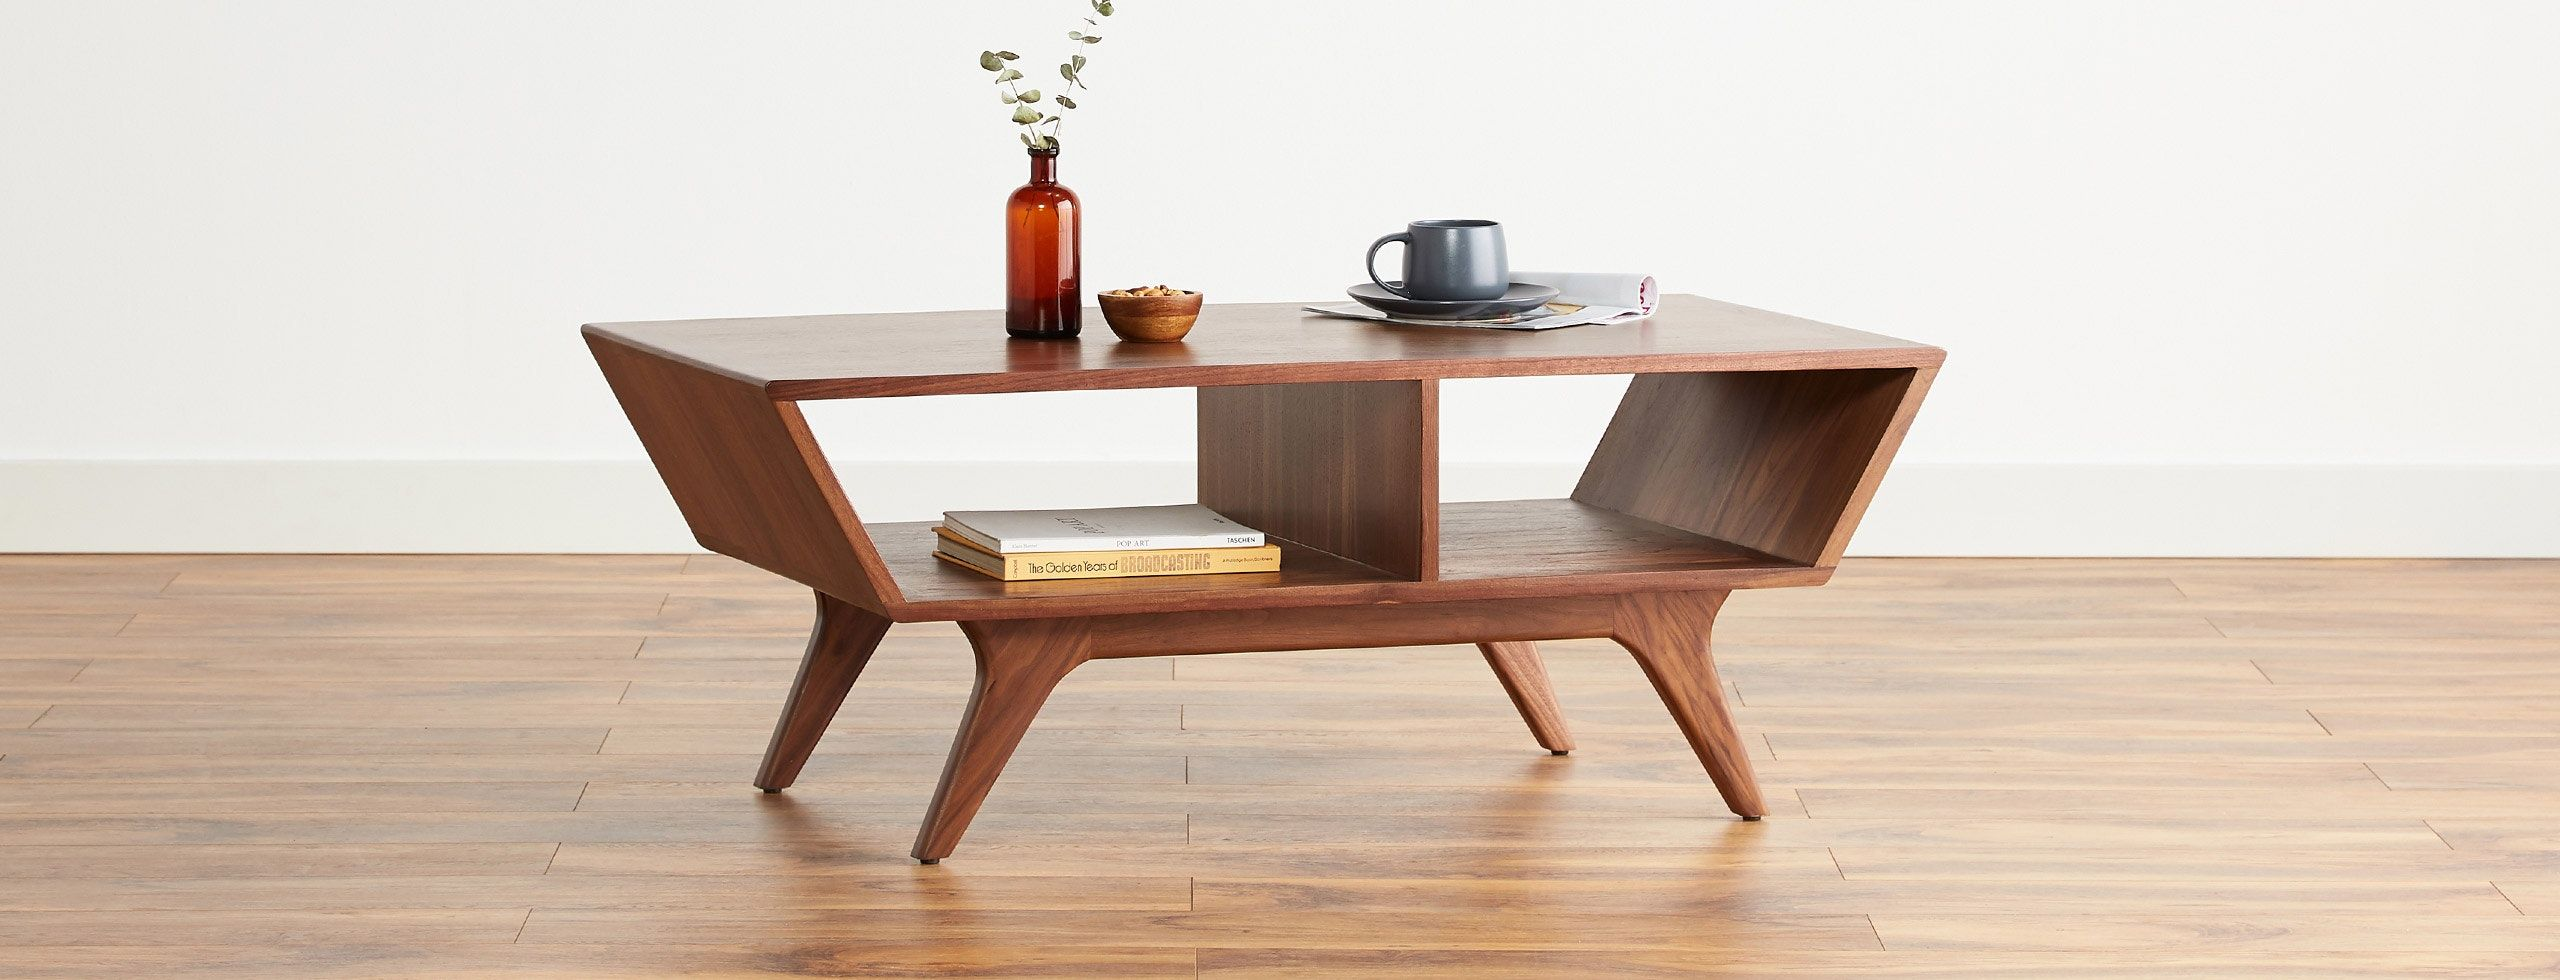 Delightfully Retro And Built To Last This Vintage Inspired Coffee Table Is A Visual Treat For Any Liv Danish Modern Furniture Modern Furniture Retro Furniture [ 980 x 2560 Pixel ]